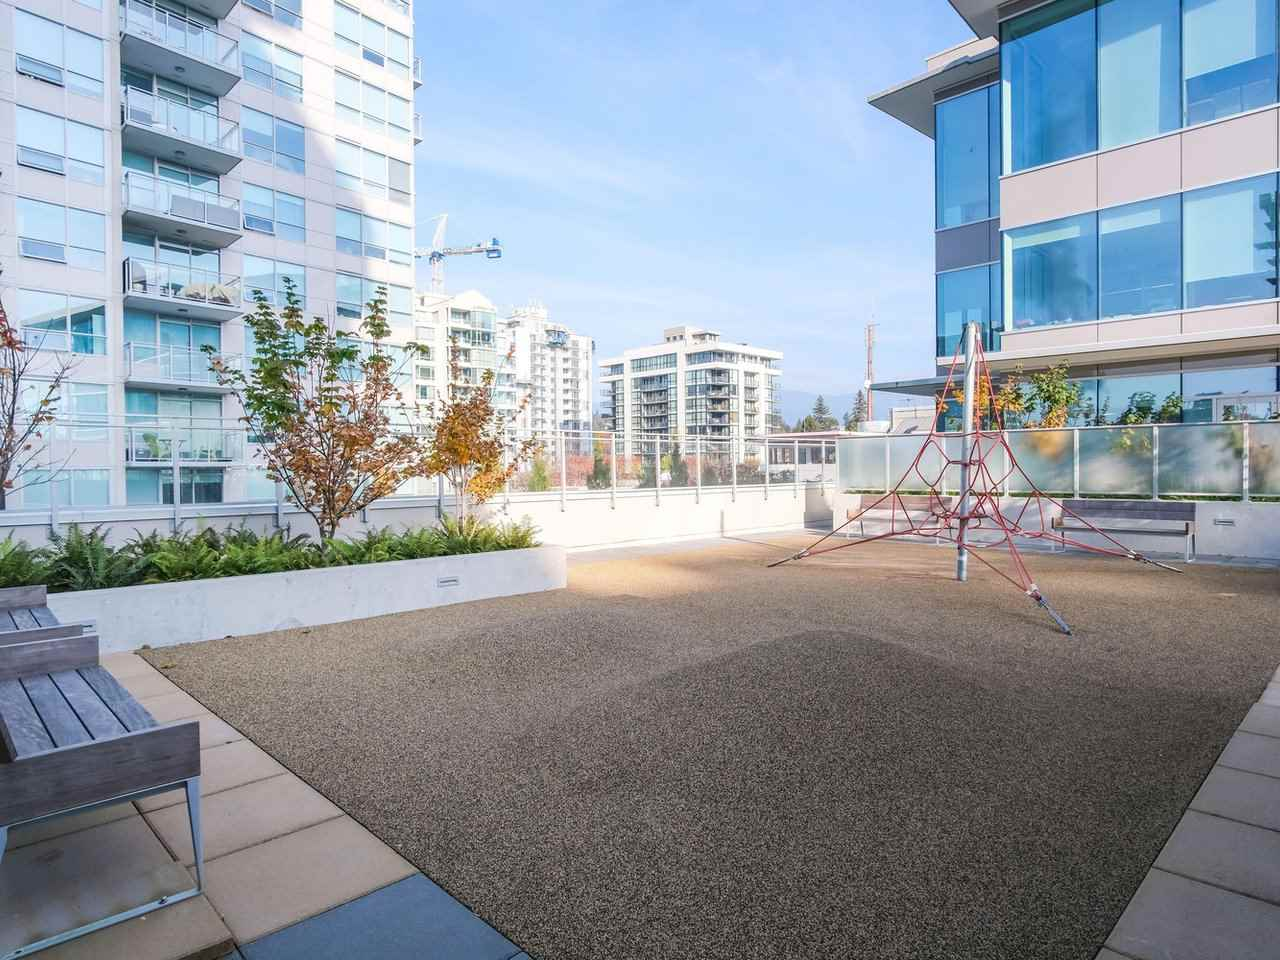 1002 112 E 13TH STREET - Central Lonsdale Apartment/Condo for sale, 2 Bedrooms (R2404786) - #20